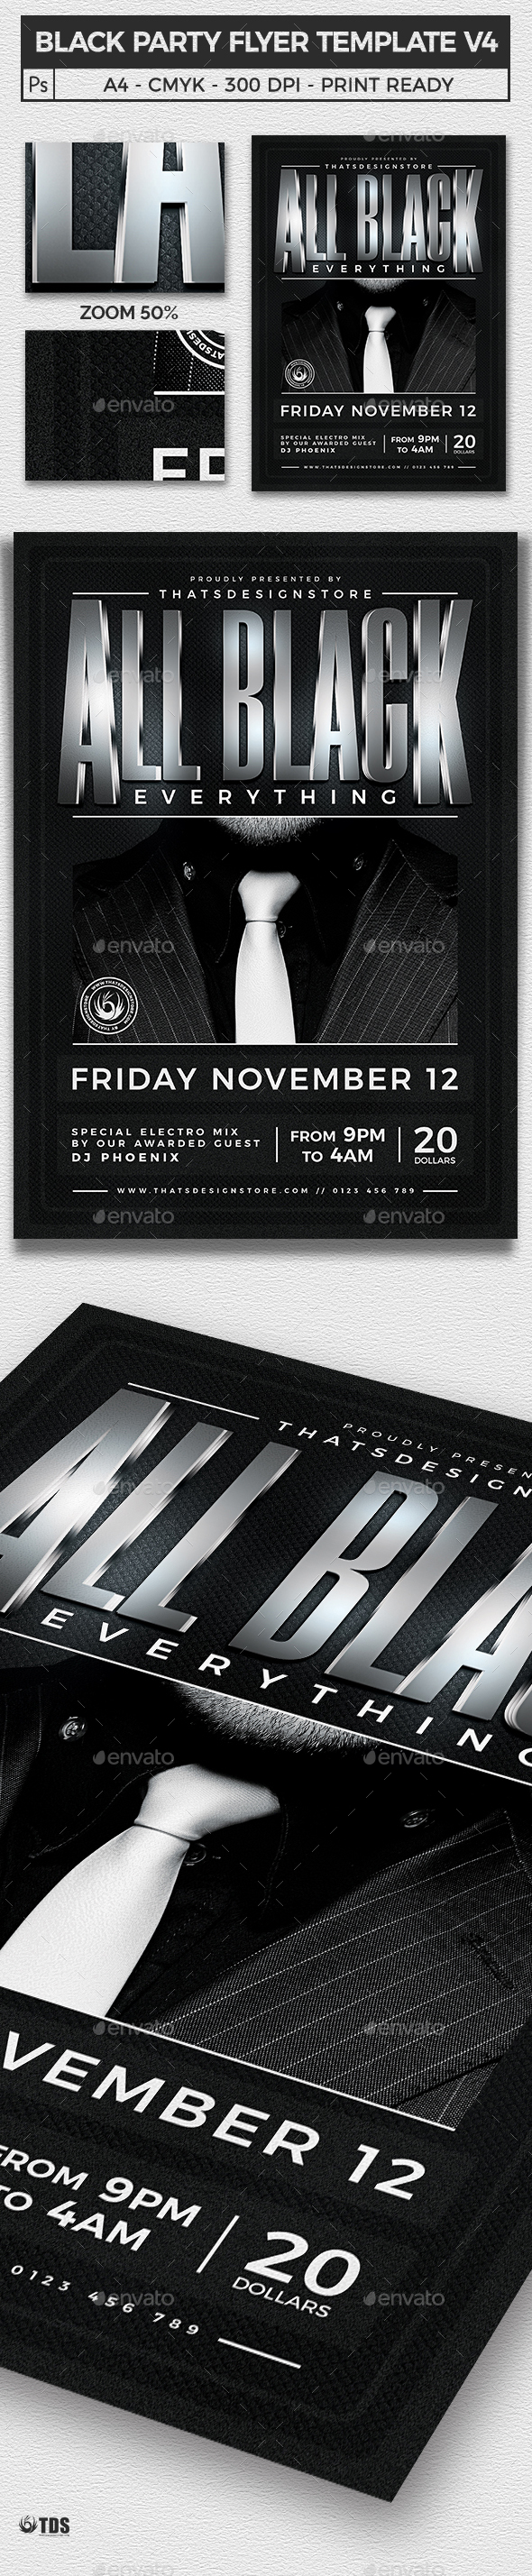 Black Party Flyer Template V4 - Clubs & Parties Events